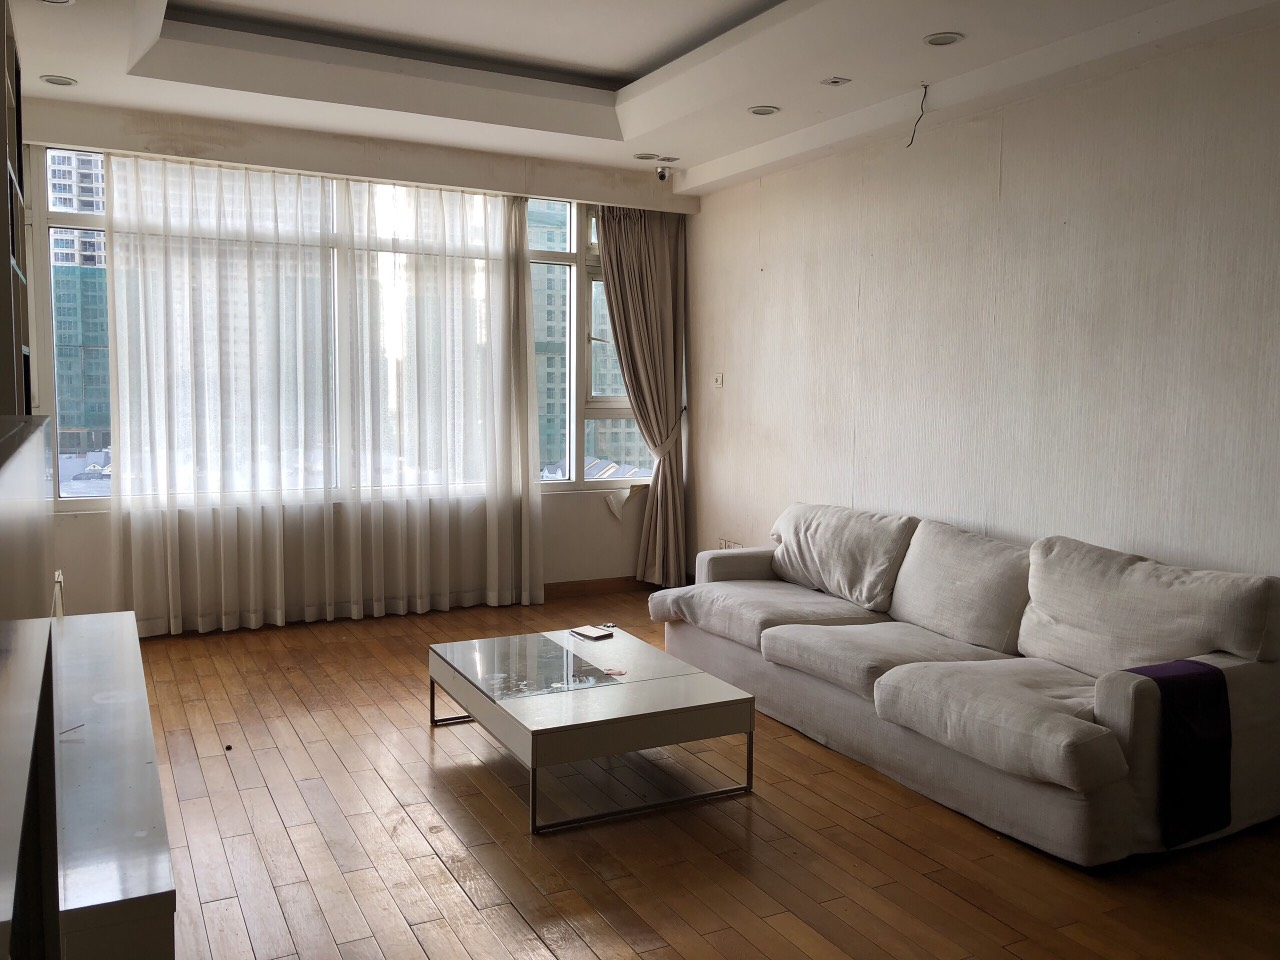 Apartment for rent BT1011357 (1)